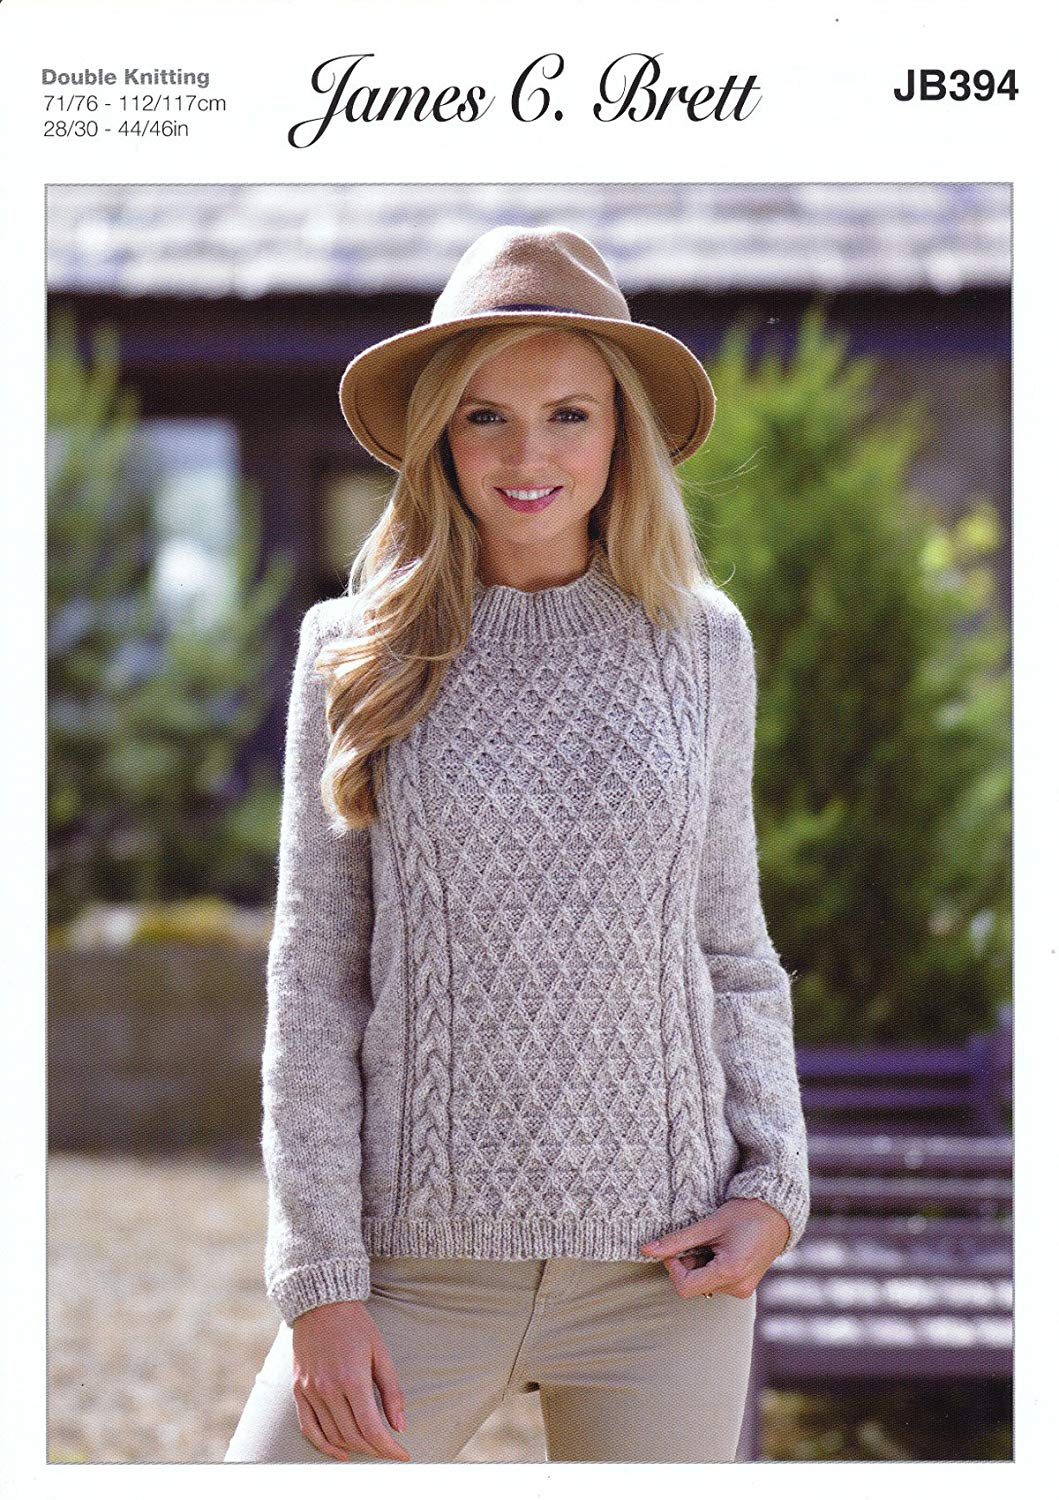 86b4ef7a6c308 Get Quotations · James Brett Double Knitting Pattern Womens Long Sleeved  Cable Detail Sweater Misty DK (JB394)